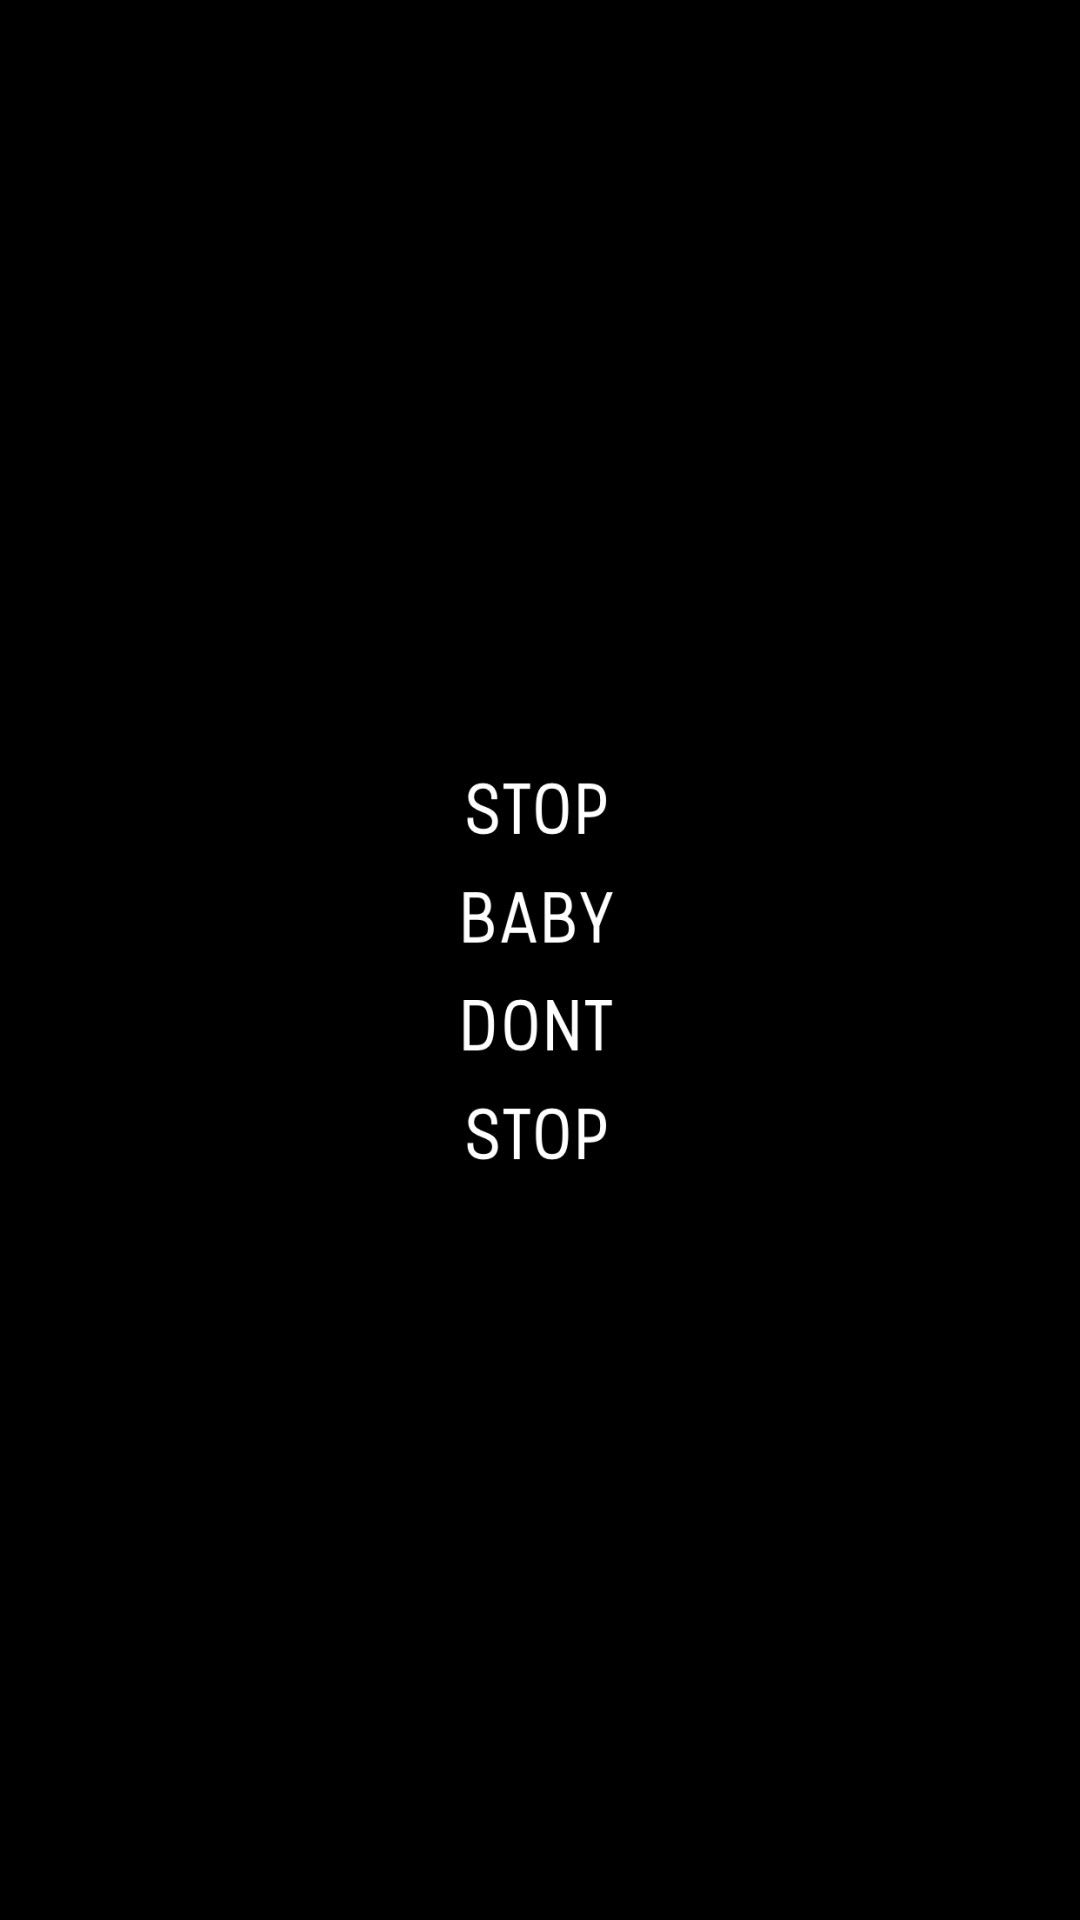 NCT U TEN TAEYONG BABY DONT STOP WALLPAPER FONDO 1080x1920